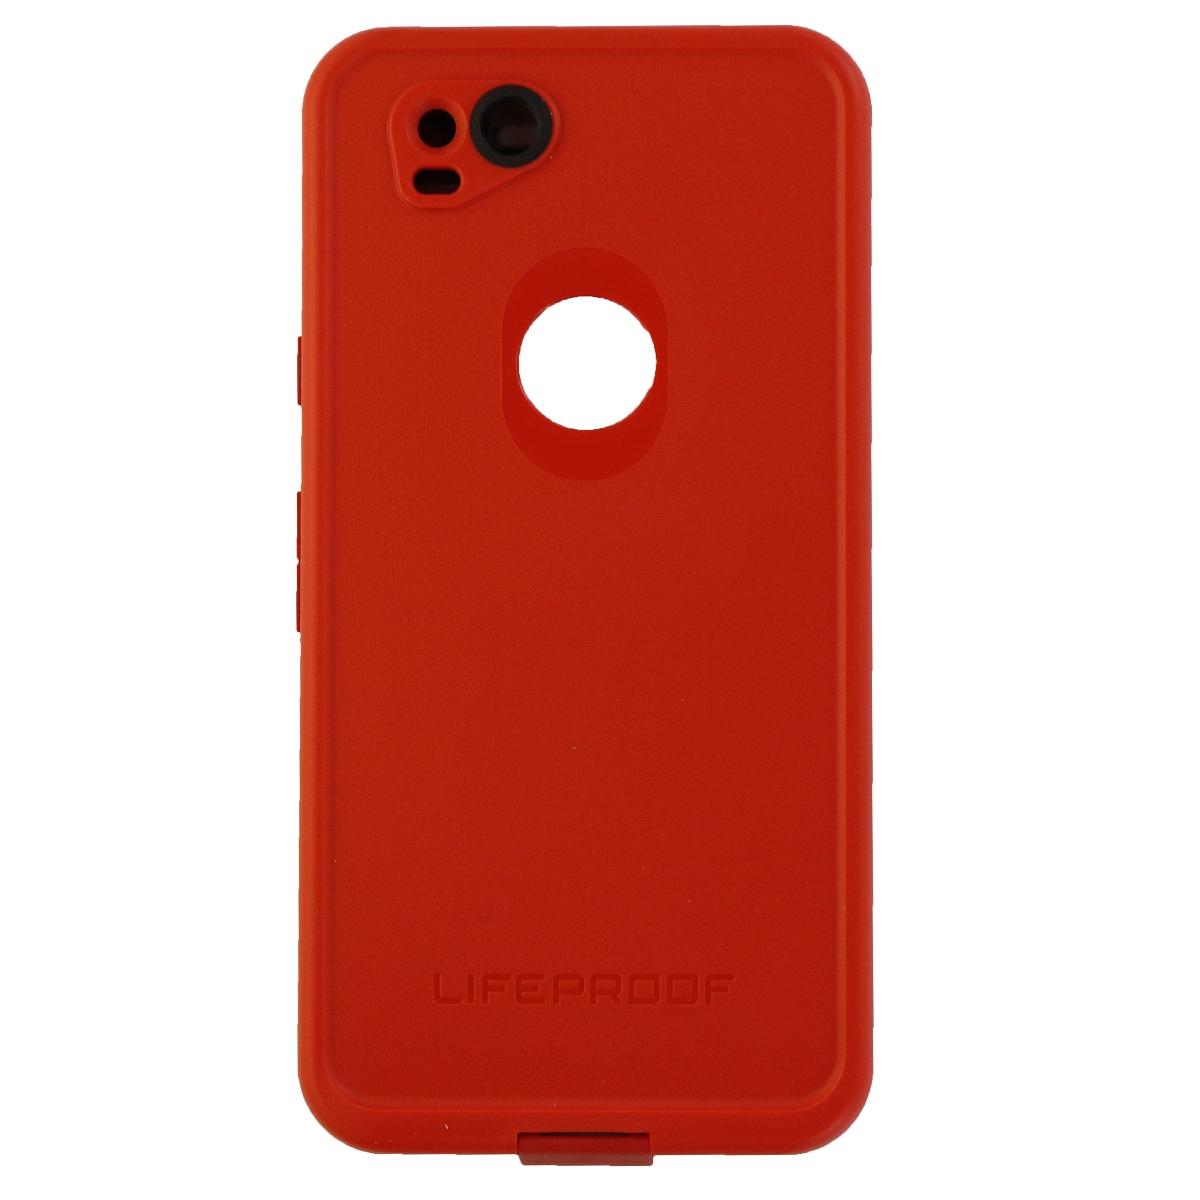 LifeProof FRE Series Waterproof Case Cover for Google Pixel 2 - Red/Gray